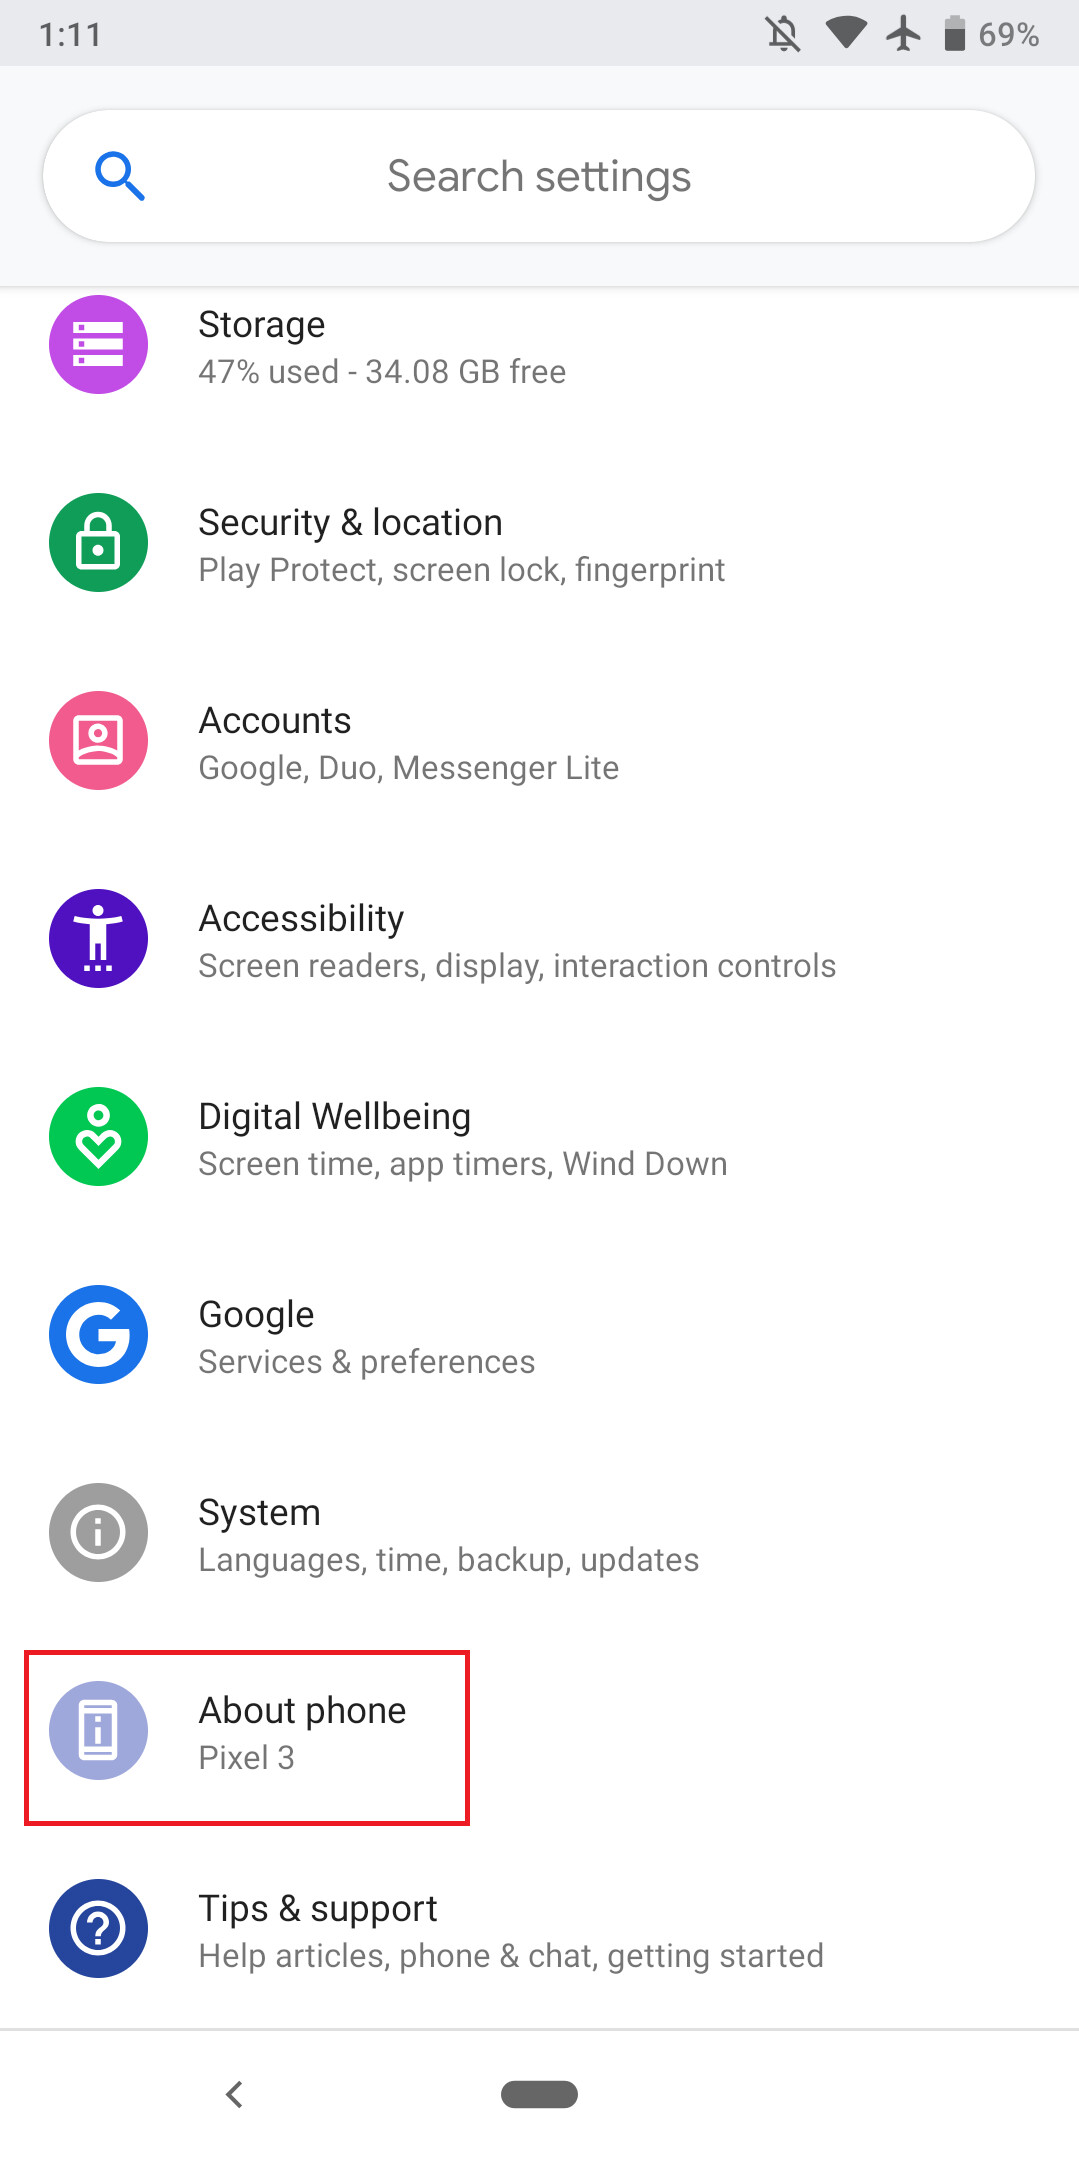 February update brings changes to Google's Pixel handsets